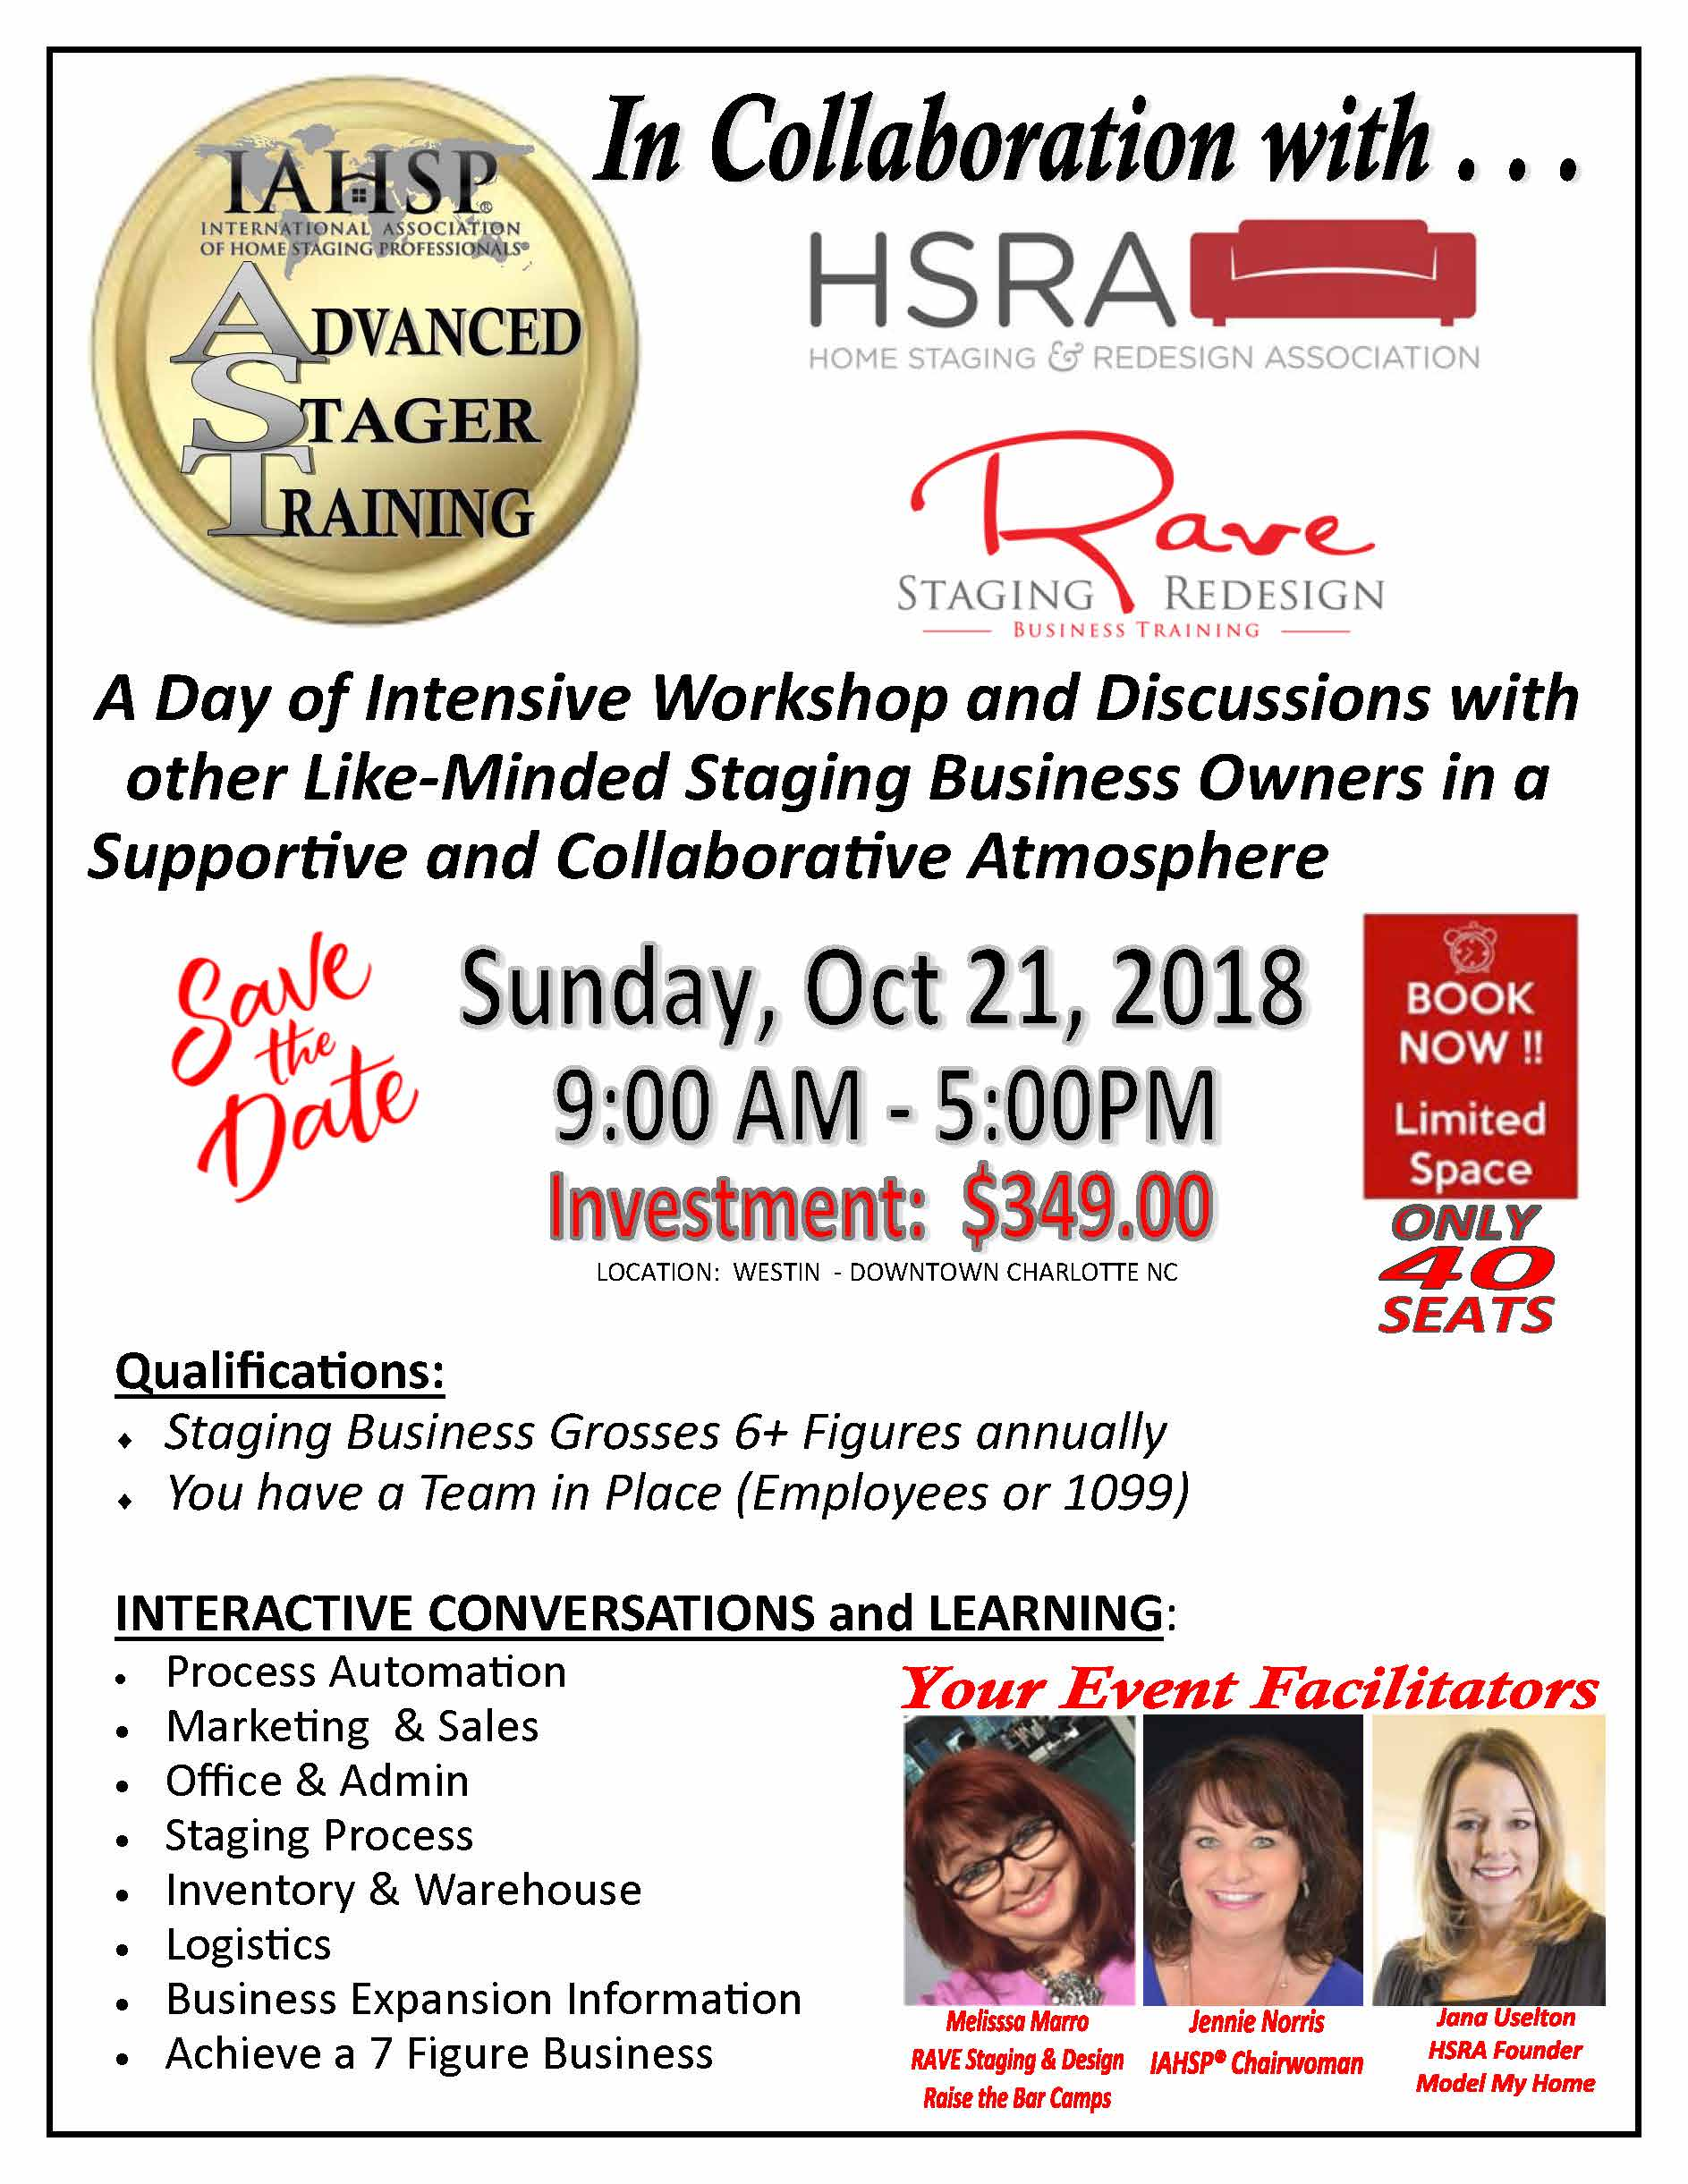 Advanced Stager Training promo